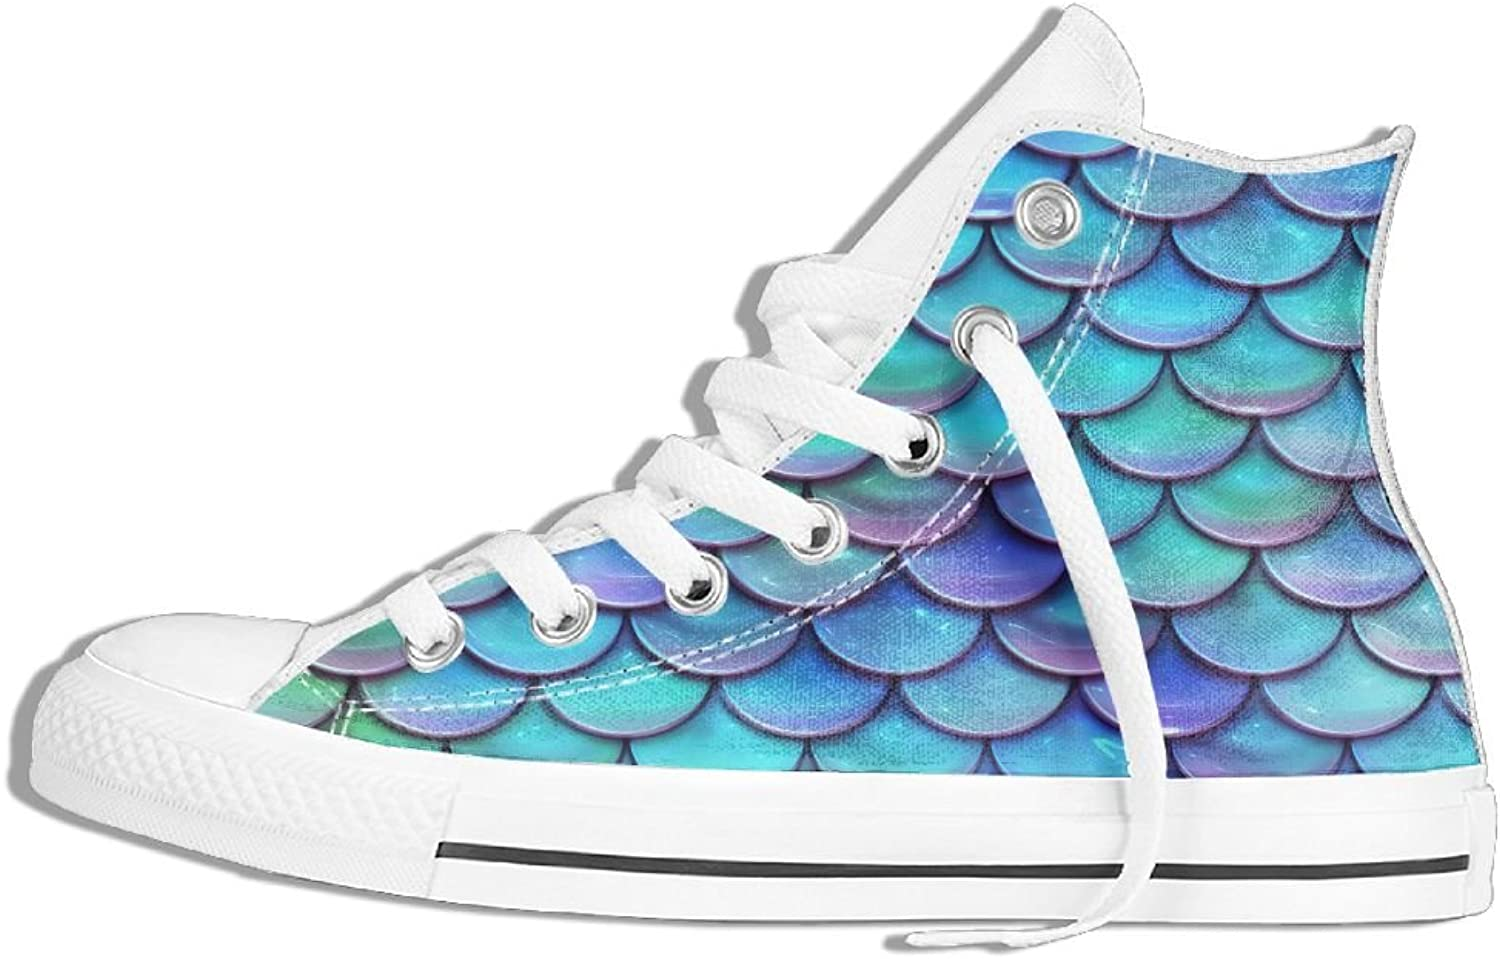 Womens High-Top Canvas Sneakers Mermaid Scales Pattern Flat Anti-slip Sports Trainers shoes